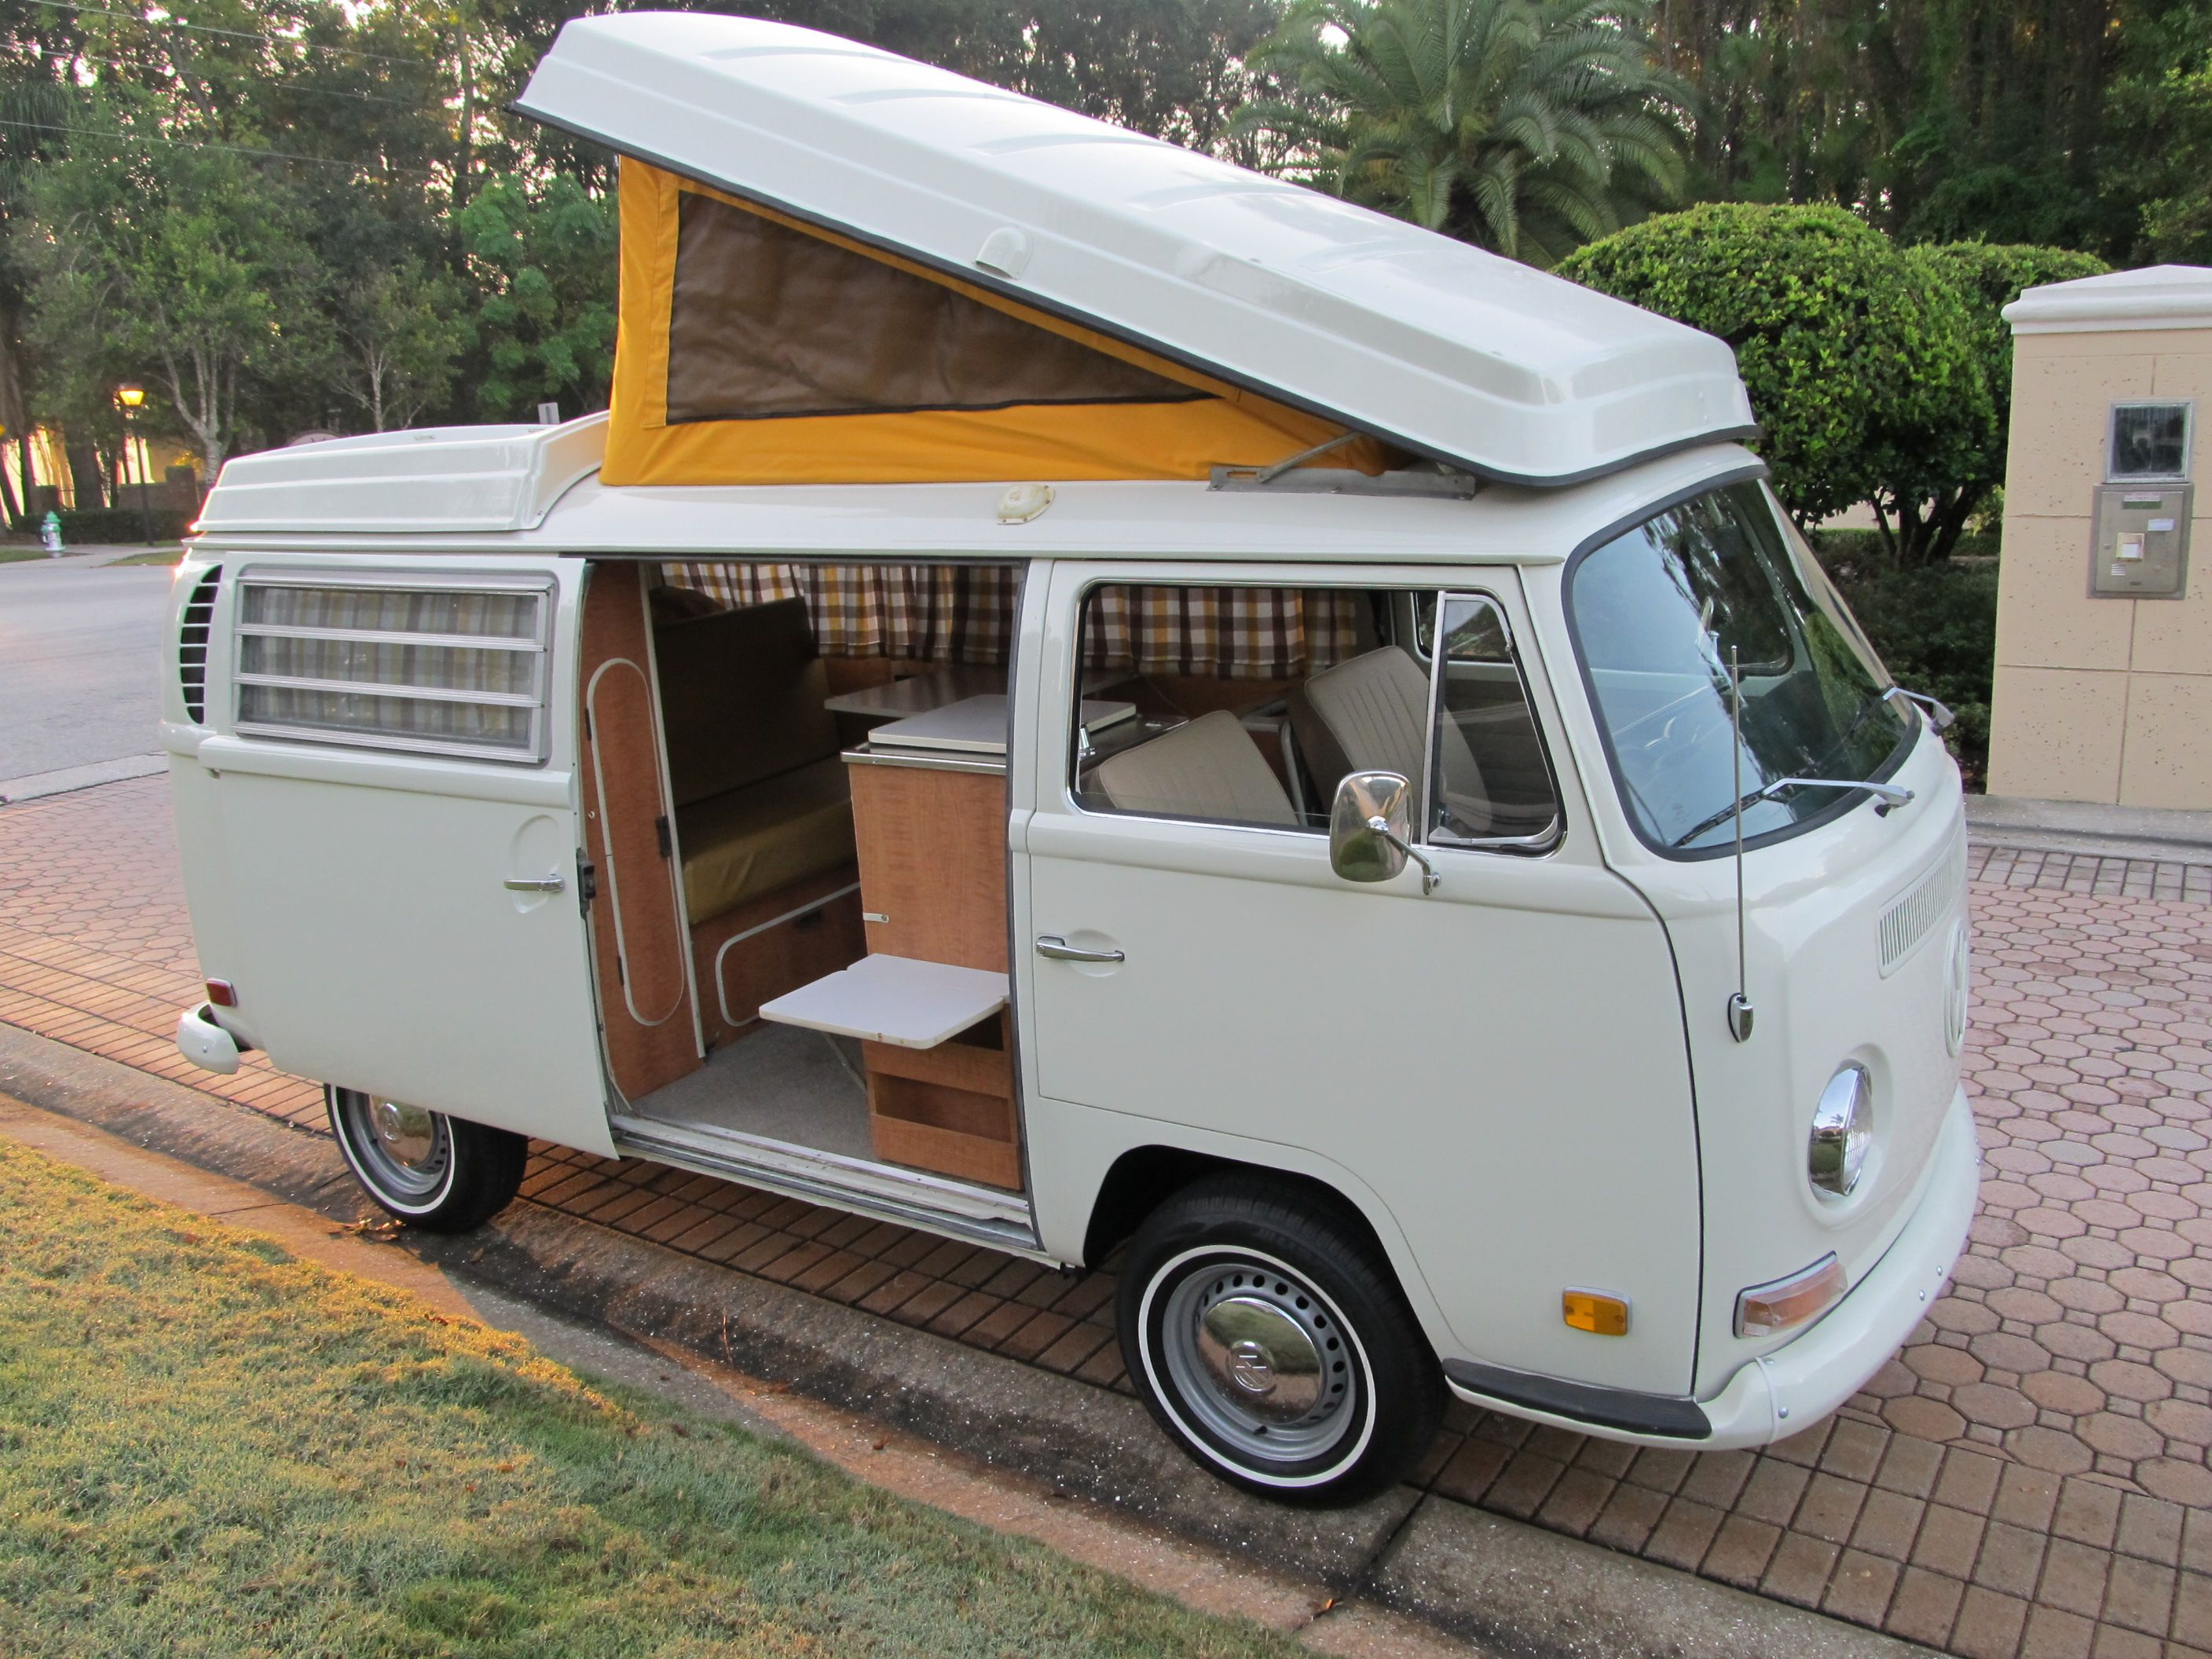 1971 vw bus 1971 vw bus 010 vw vw bus volkswagen. Black Bedroom Furniture Sets. Home Design Ideas